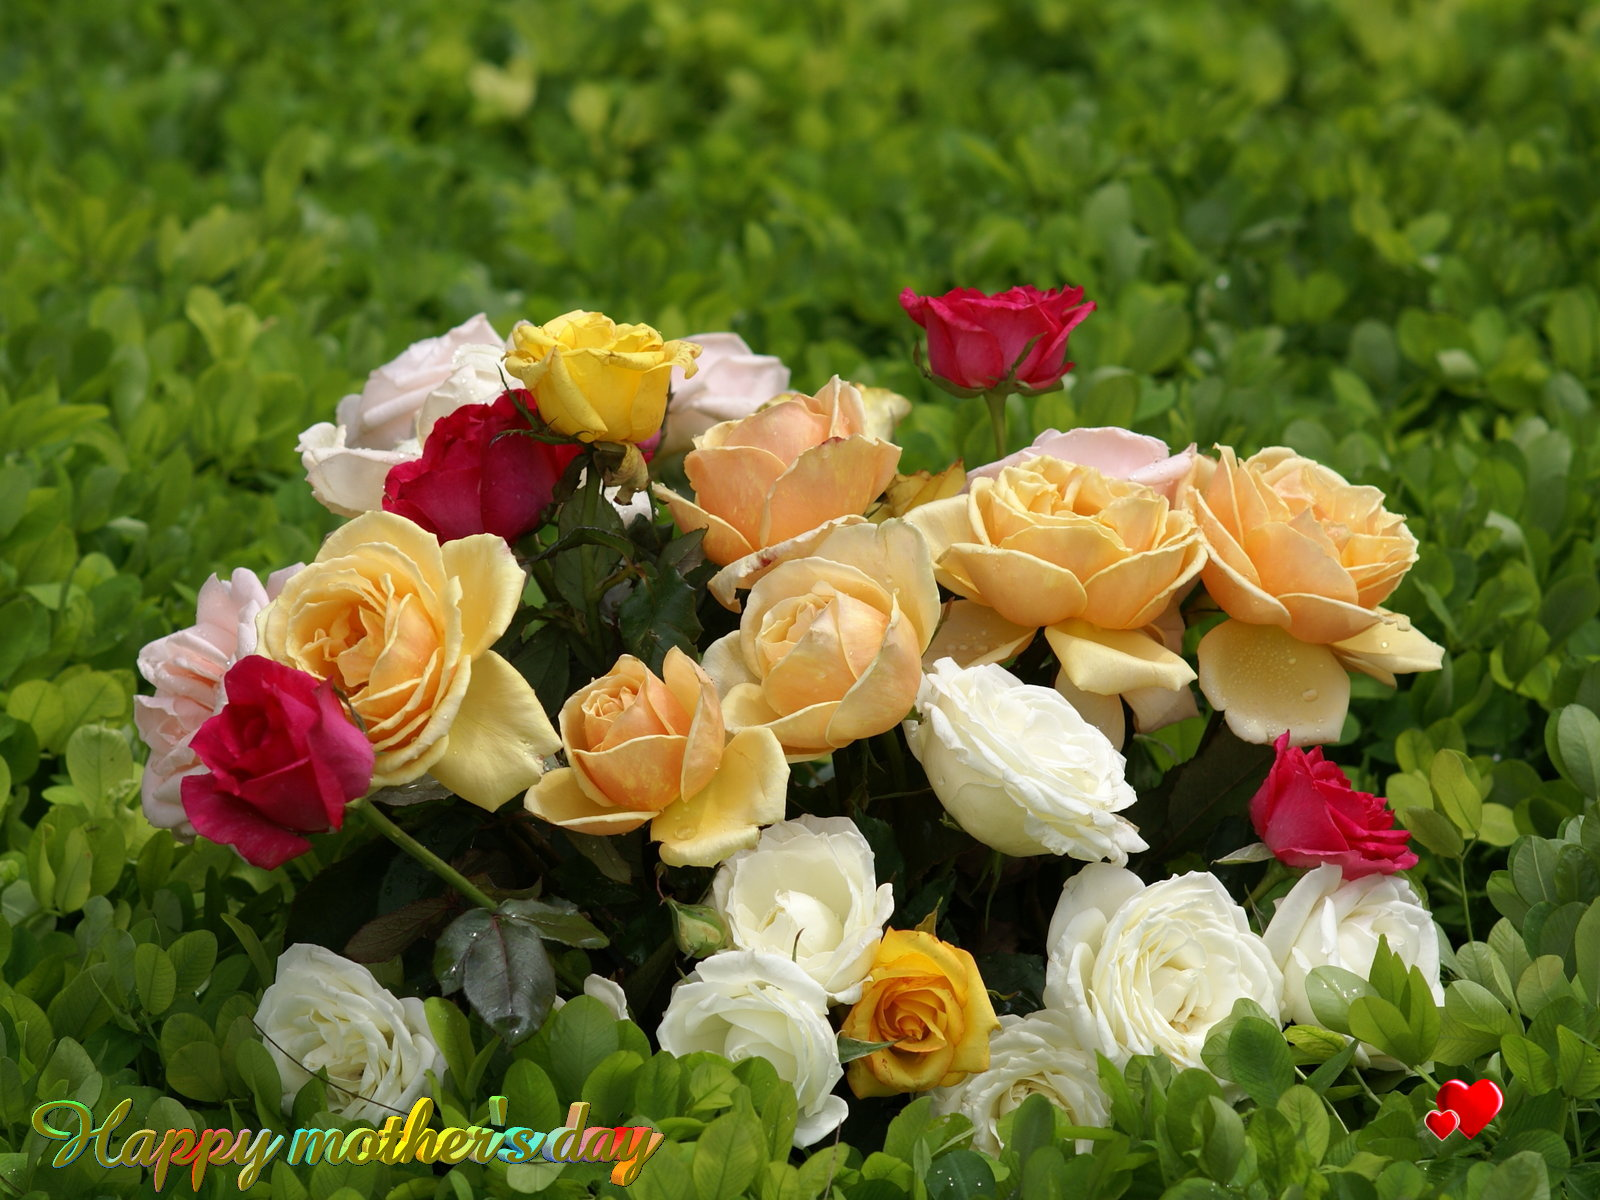 http://1.bp.blogspot.com/-j8CTpQUEuSo/T5kEsFNRXOI/AAAAAAAADfQ/7cPr3xft_MM/s1600/Mothers-Day-Roses-Bunch-Wallpaper.jpg